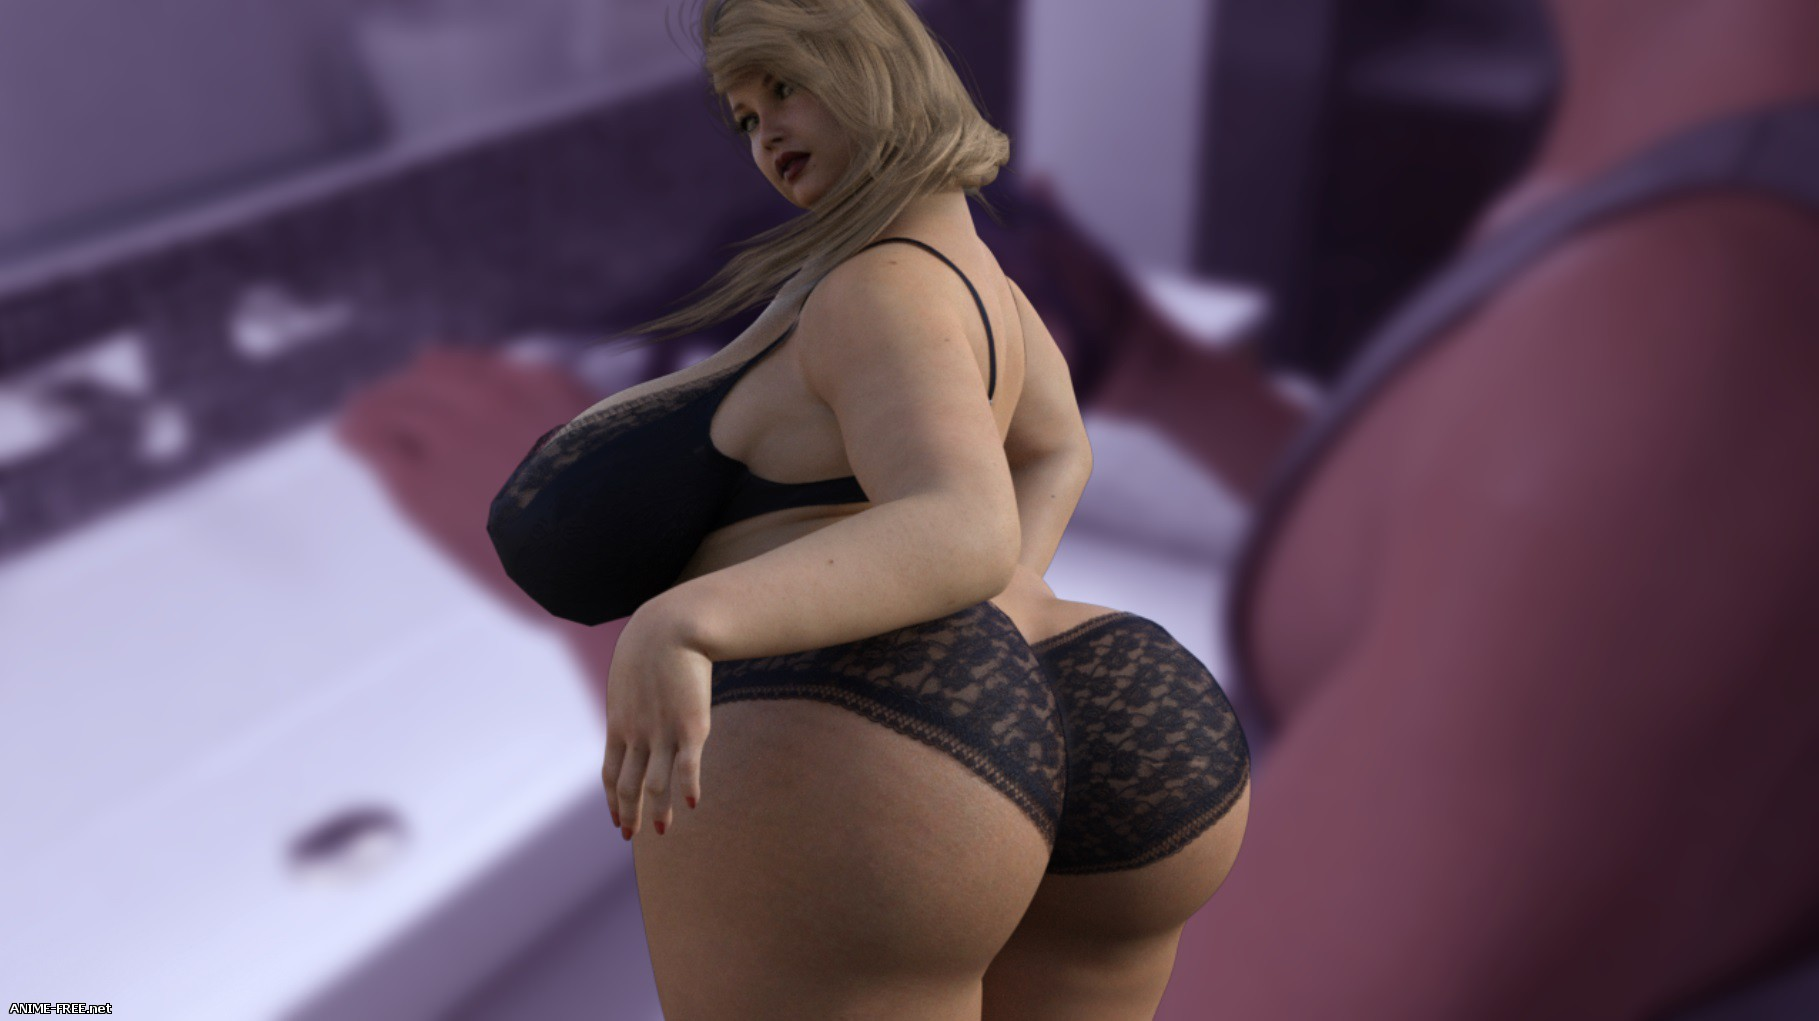 Plump City (My Plump Mom) / Plump City 2 - My Russian Holidays [2018] [Uncen] [ADV, 3DCG] [Android Compatible] [ENG] H-Game